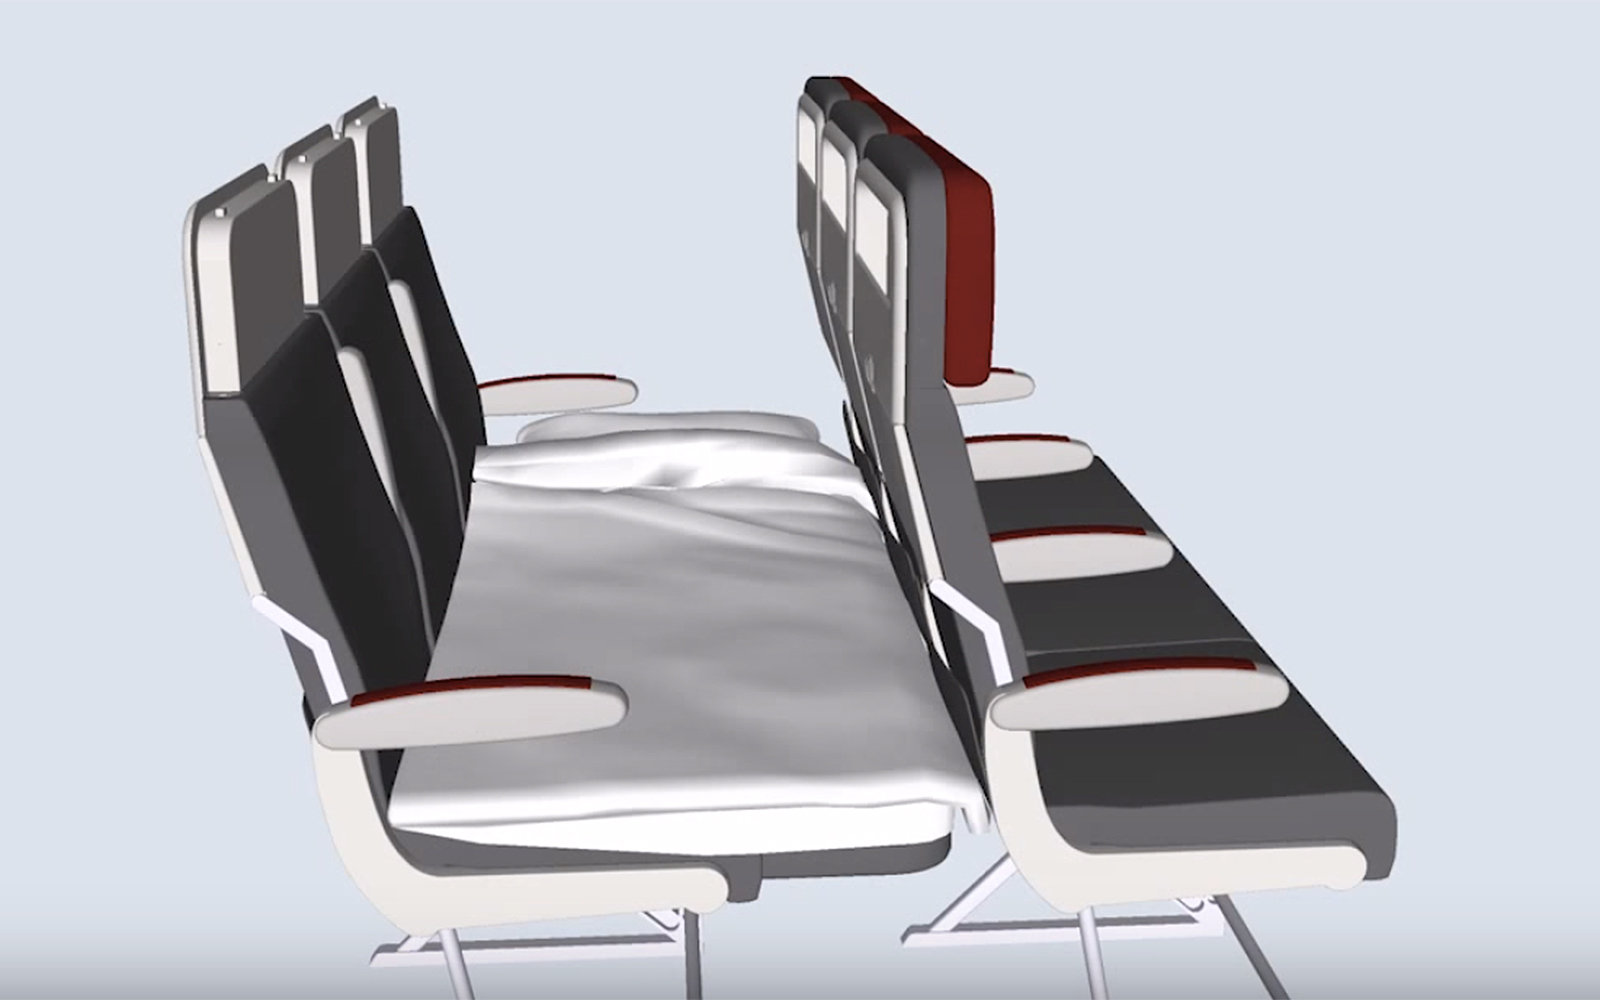 Lie Flat Seats Could Soon Be Available In Economy Travel